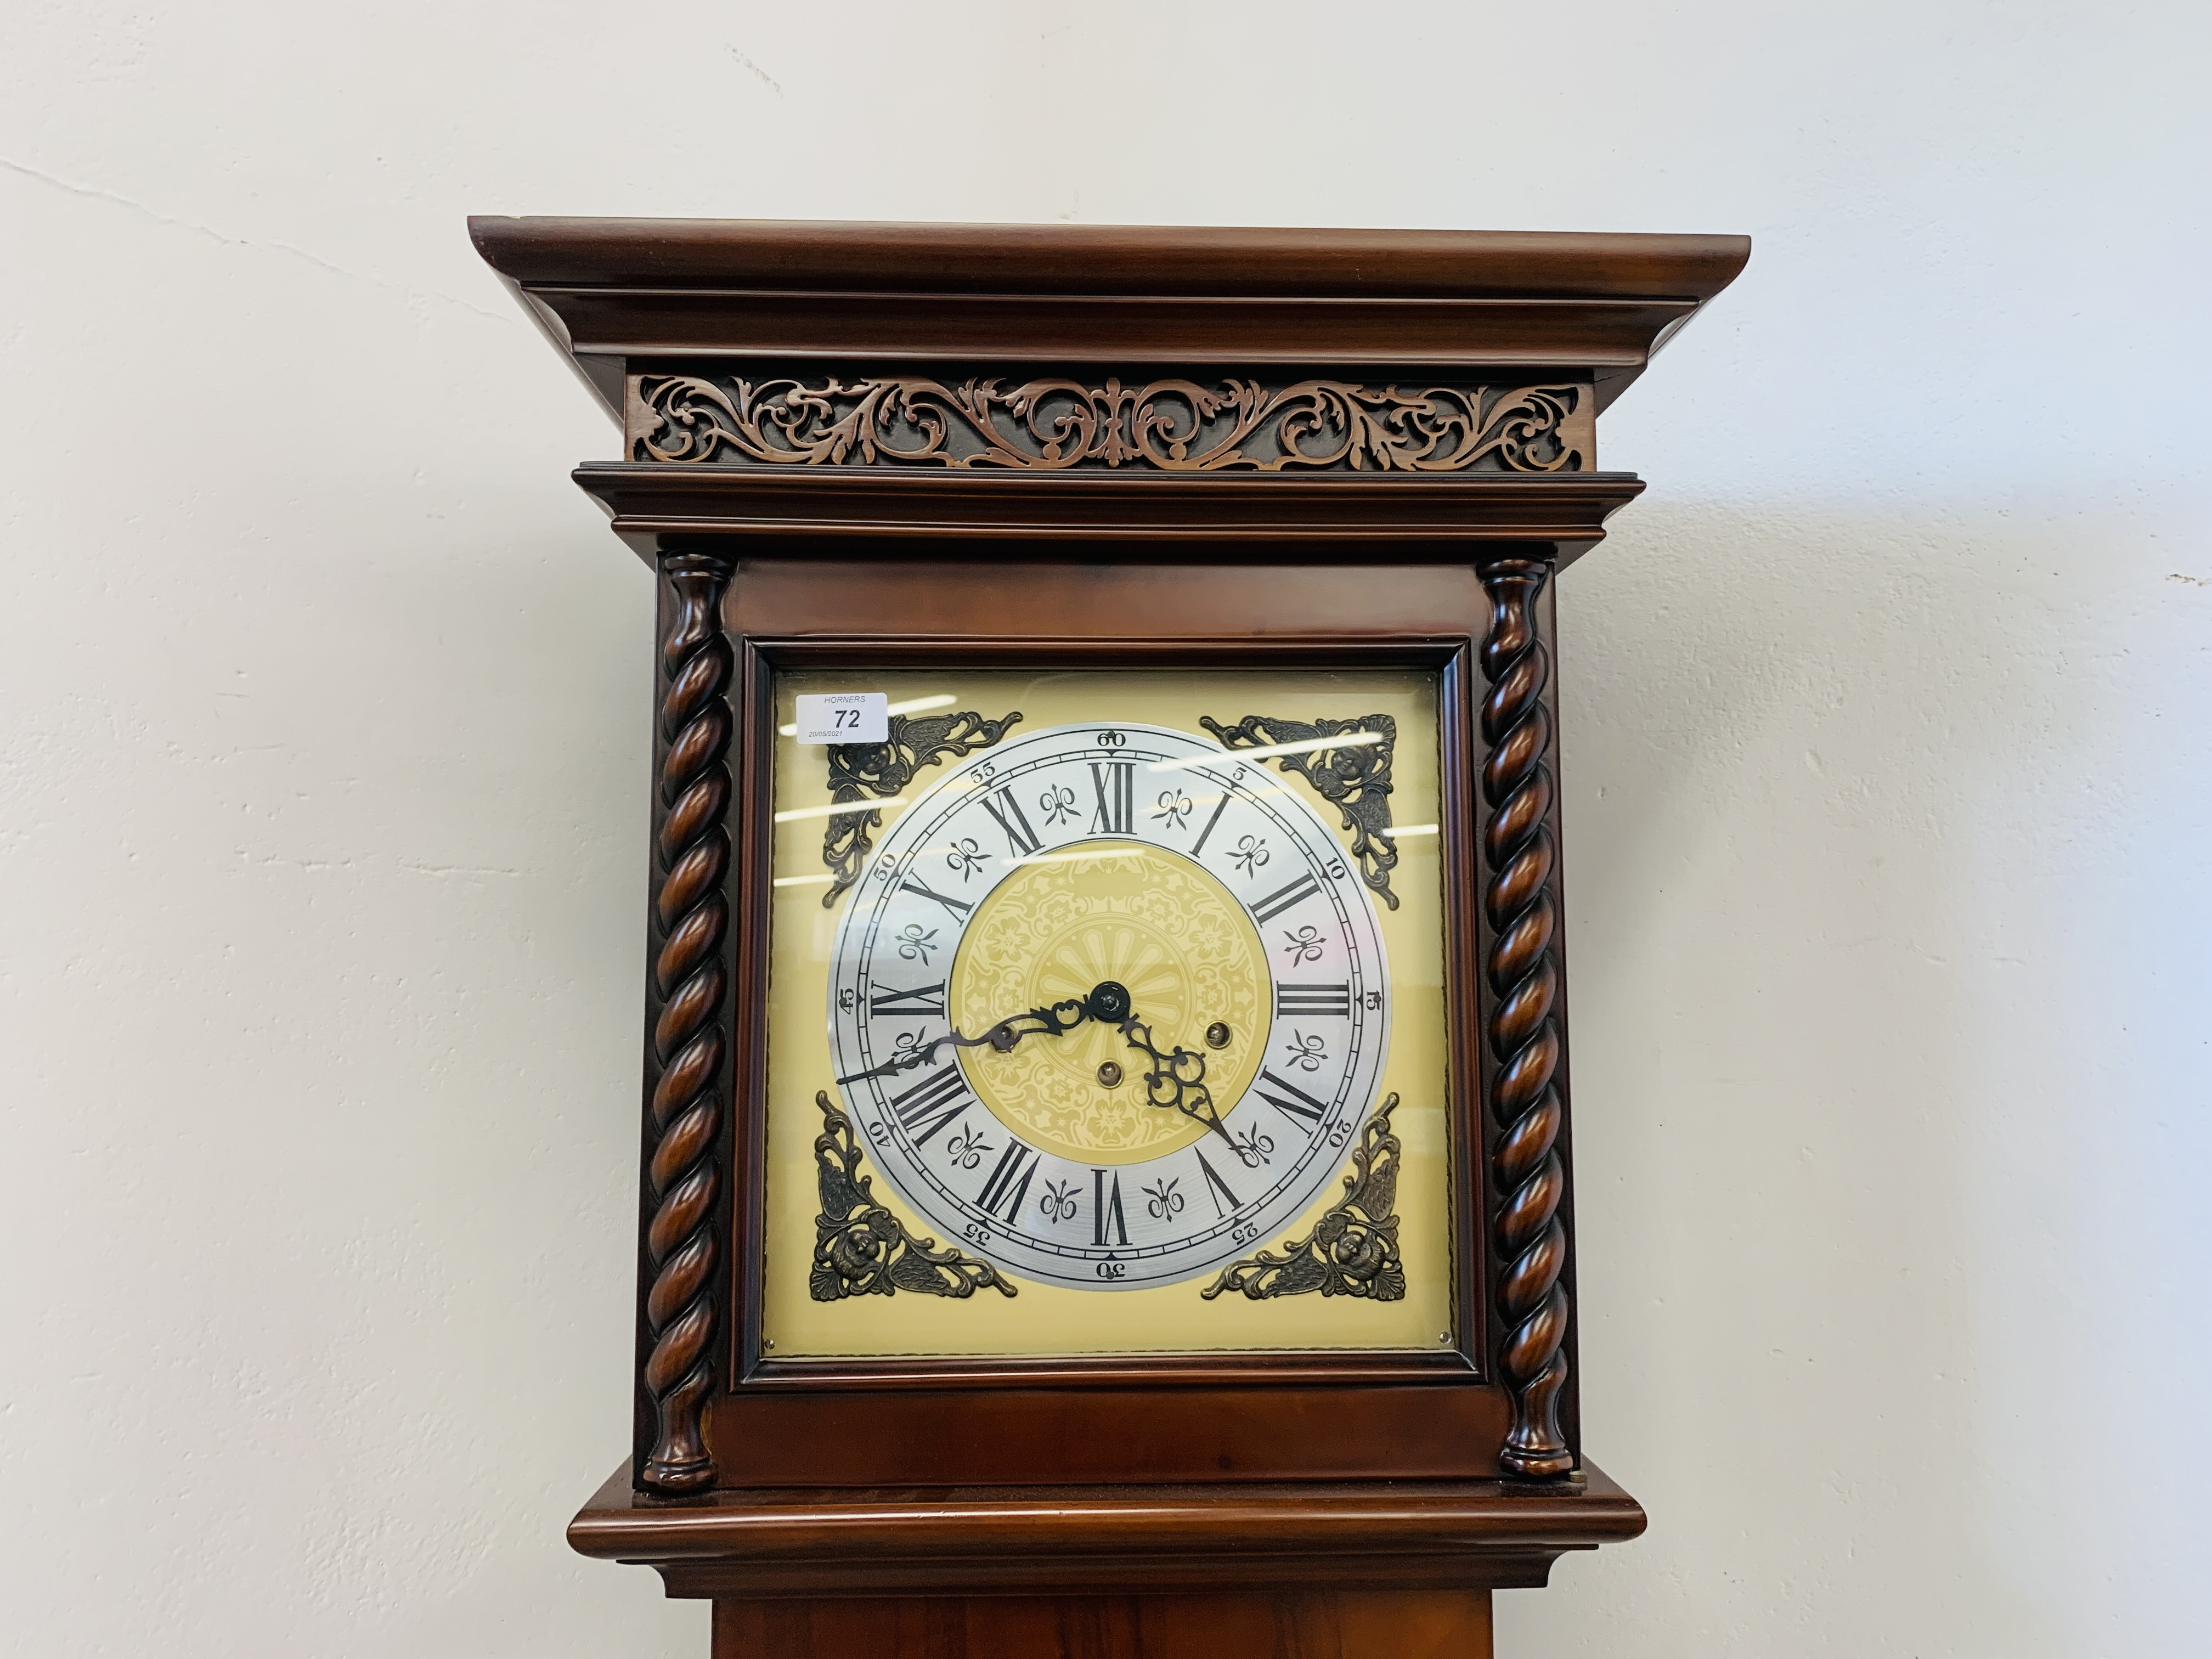 A GOOD QUALITY REPRODUCTION LONG CASE CLOCK - WESTMINSTER CHIME - SOLD AS SEEN - Image 19 of 19